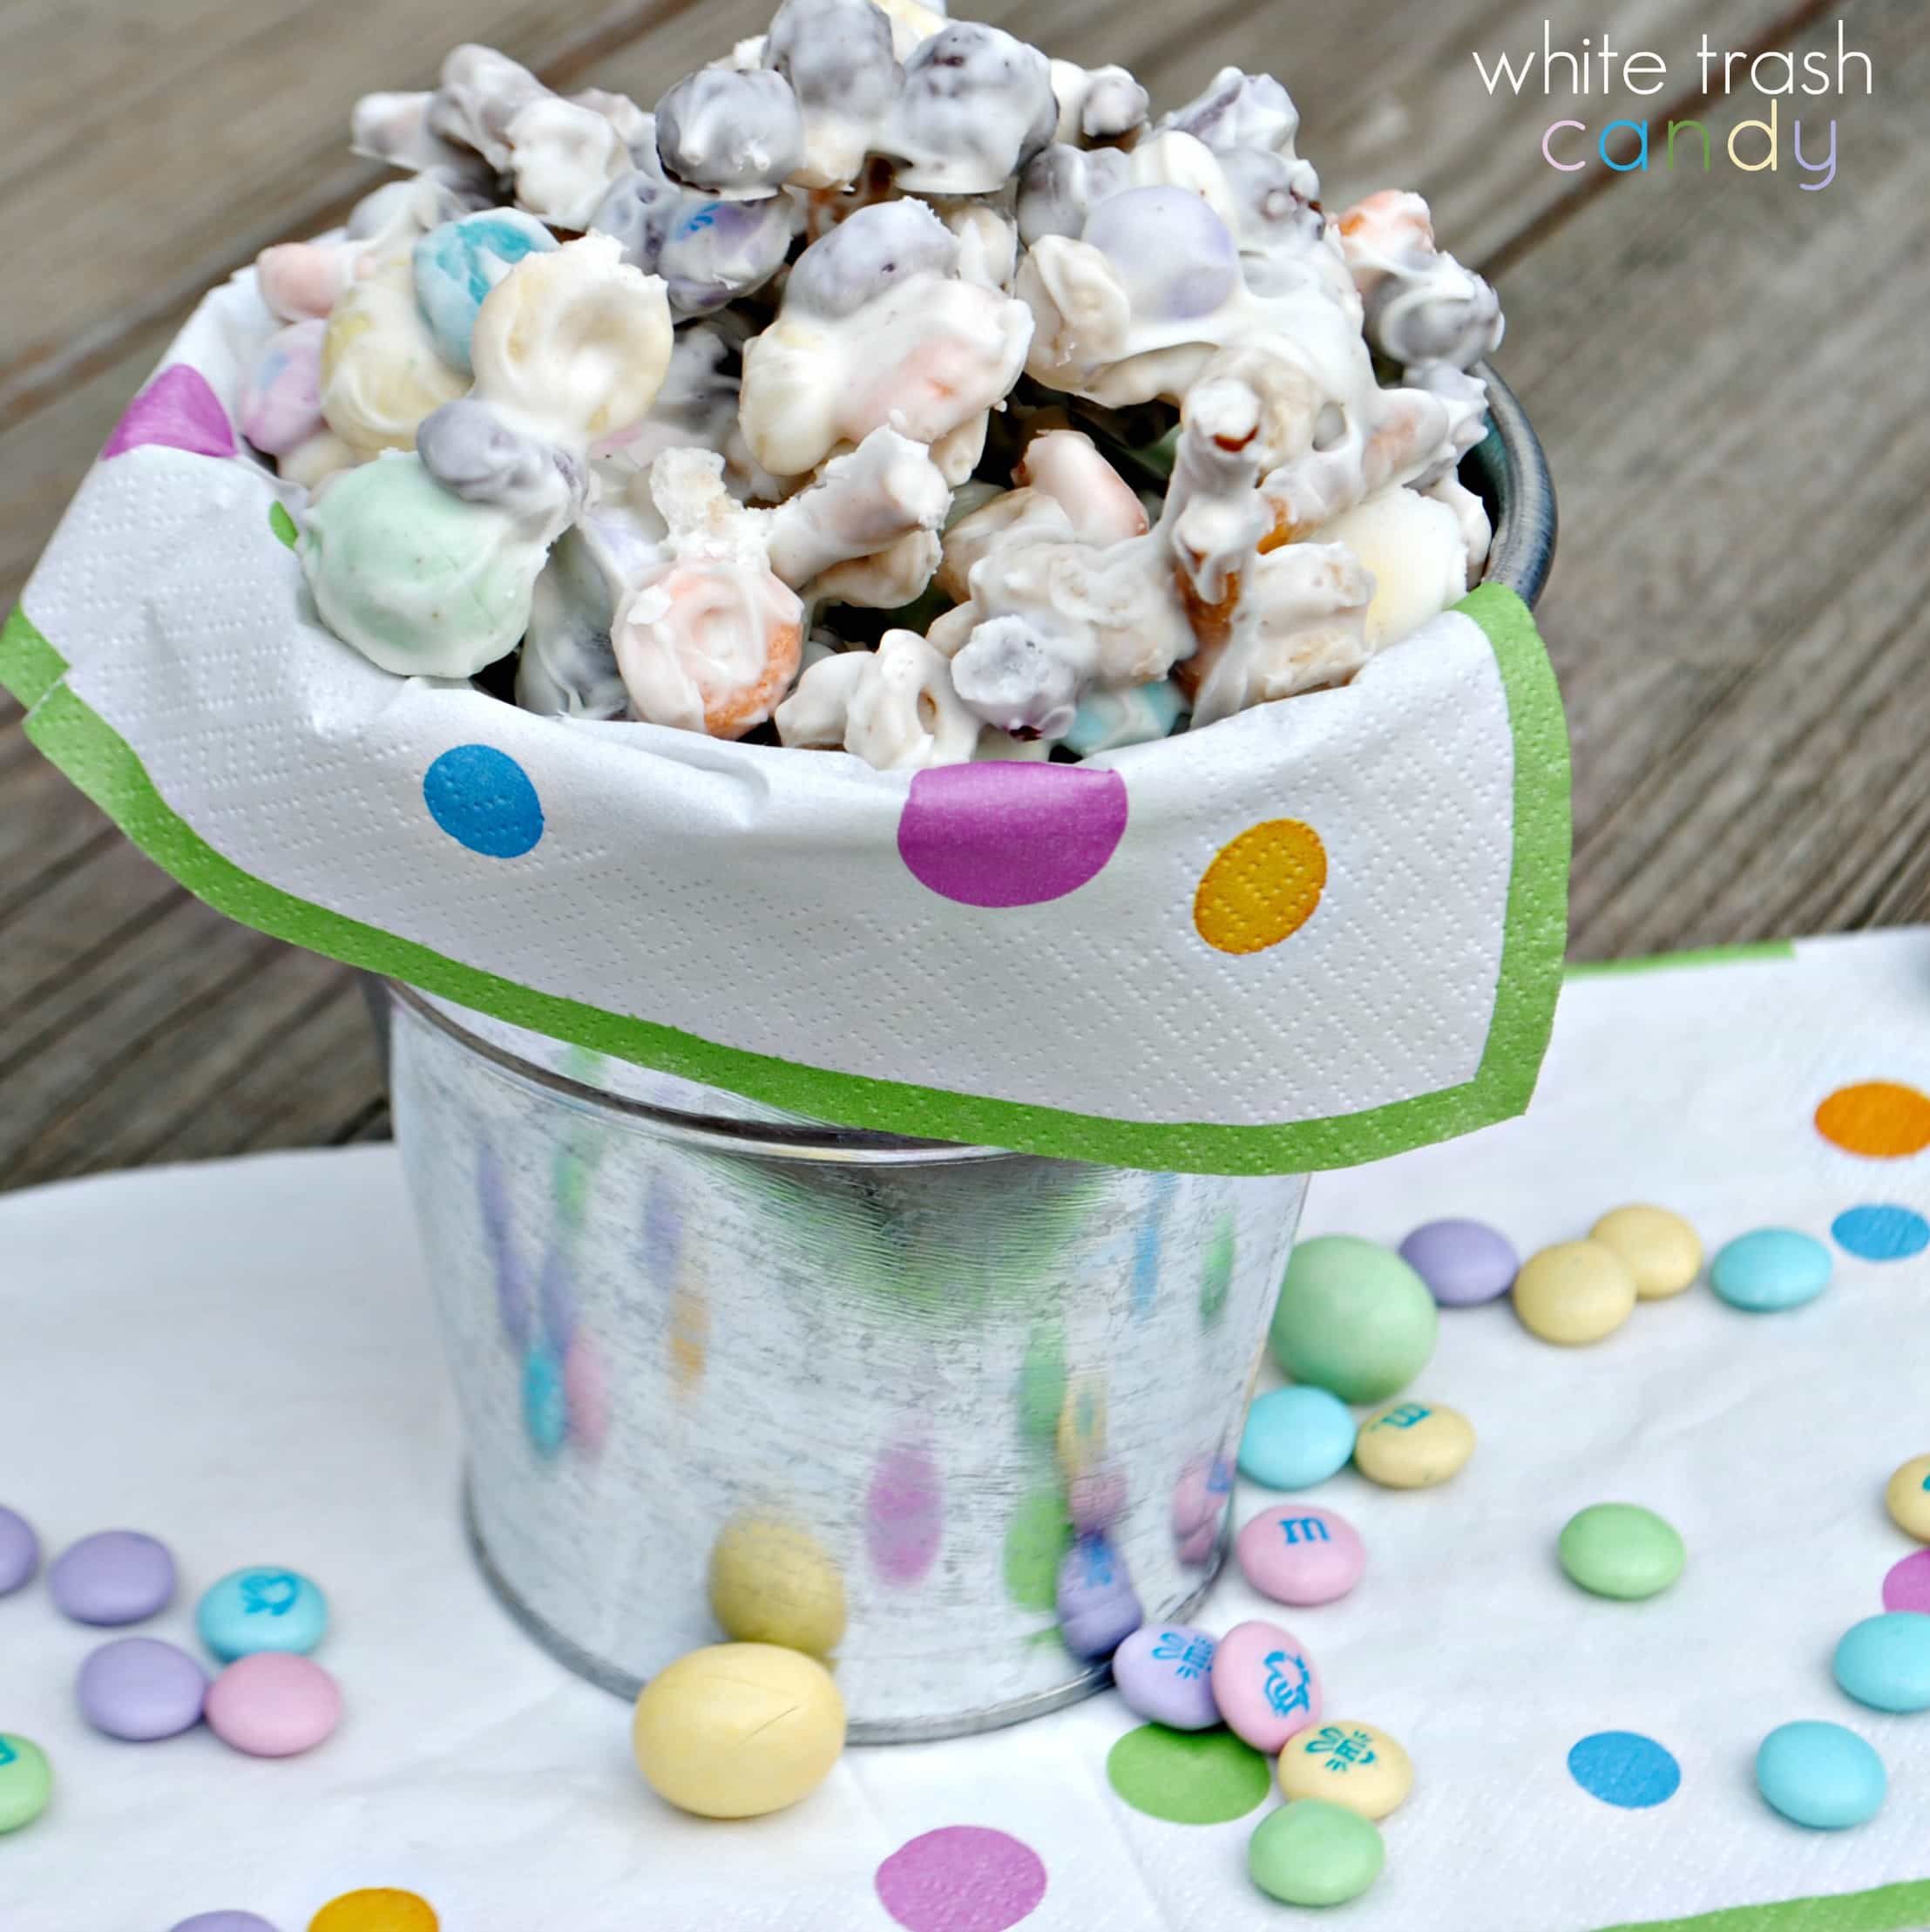 Chocolate Cashew Bark Dunmore Candy Kitchen: White Trash Candy With Cereal, Pretzels, And Melted White